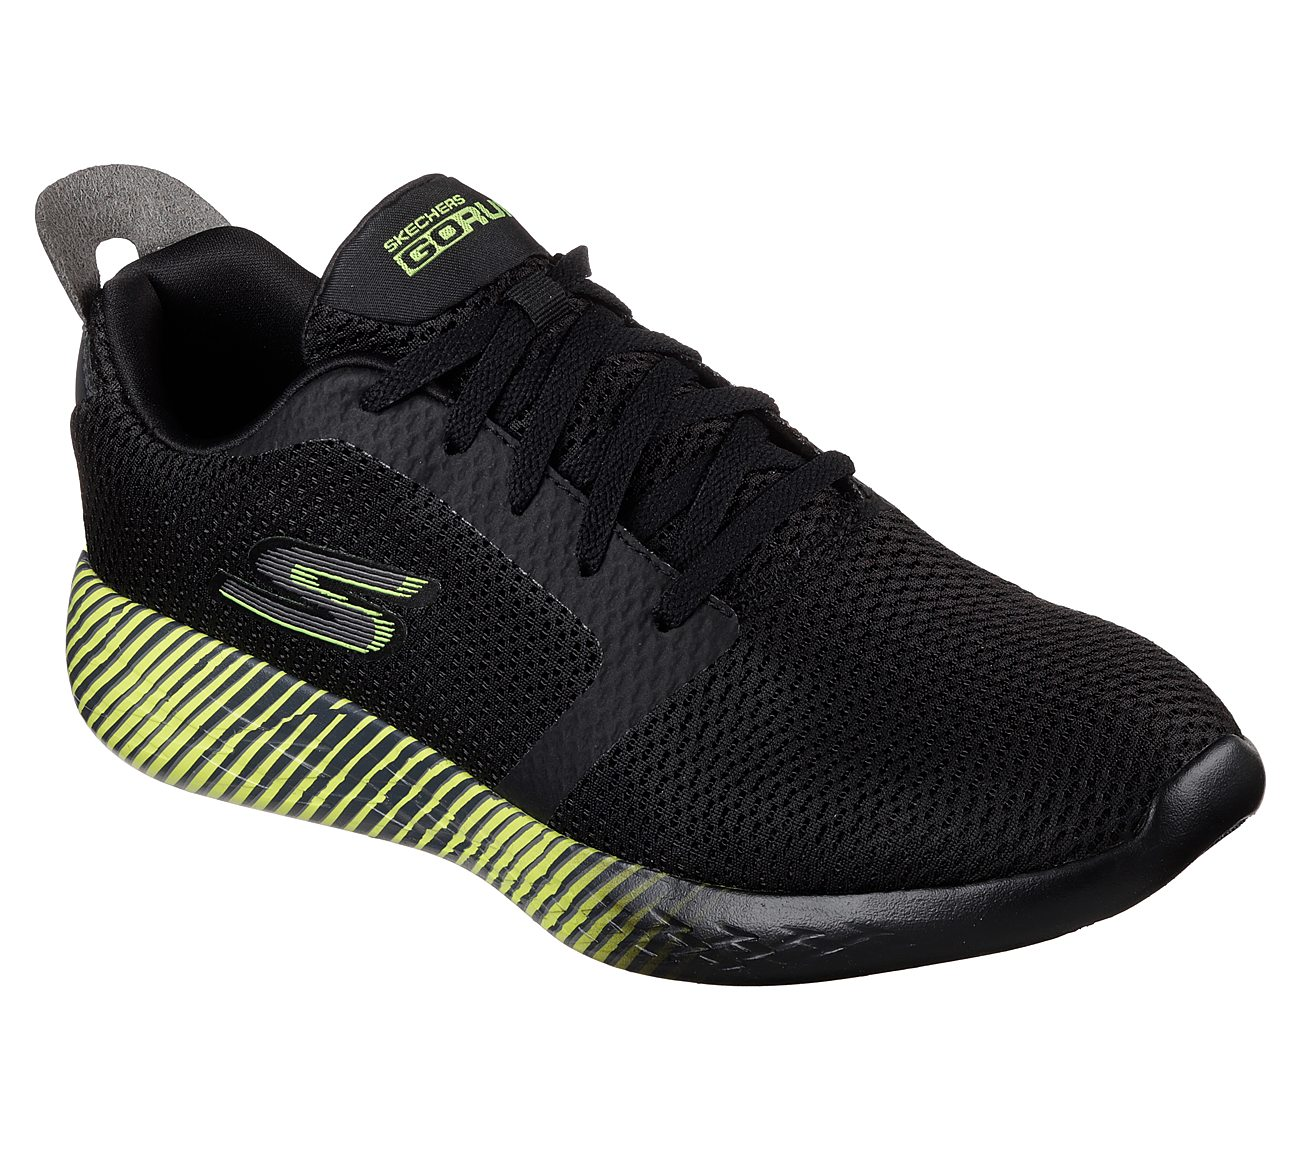 Buy SKECHERS Skechers GOrun 600 - Spectra Skechers Performance Shoes ... 075fdb3042